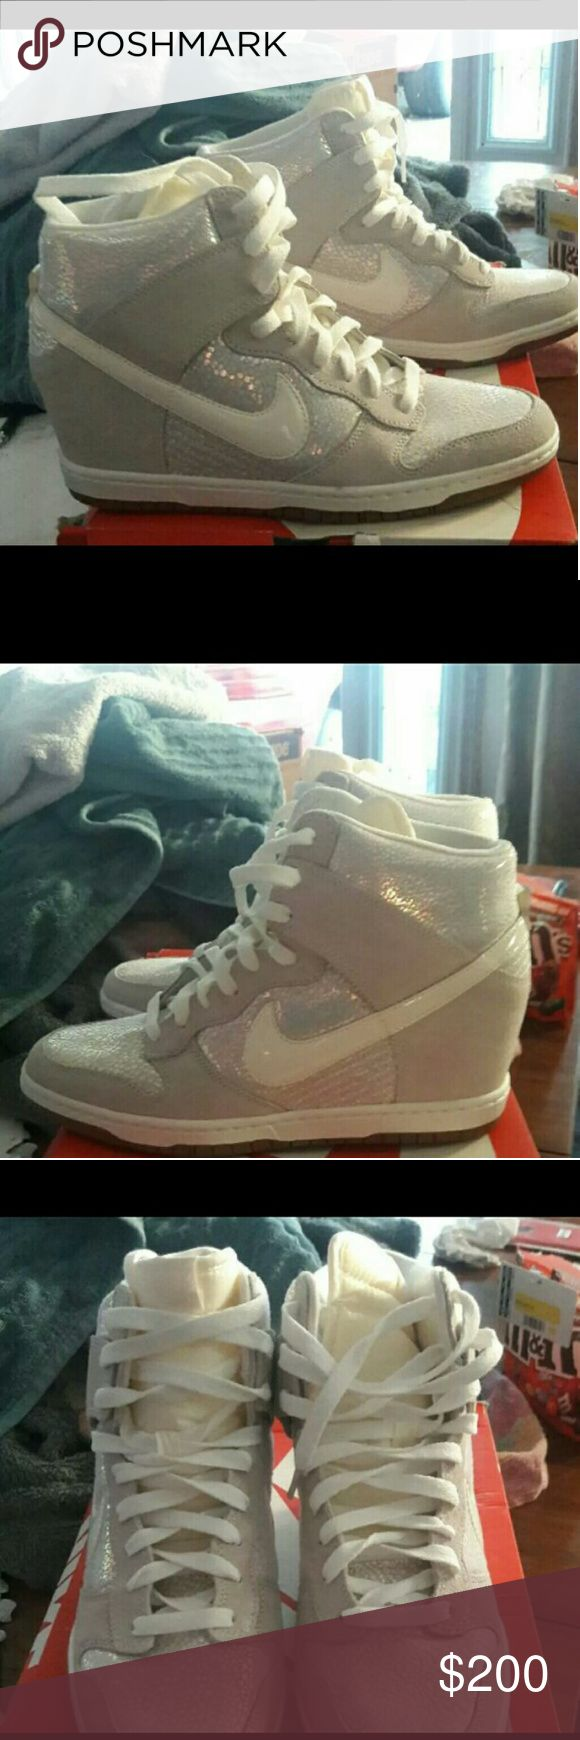 Nike dunk sky hi prim Pearl sparkle hidden wedge nike sky hi womens shoes.  Worn 1 time.  Extremely Rare find.  Size 10 womans,  comes in original box.  Excellent condition Nike Shoes Wedges